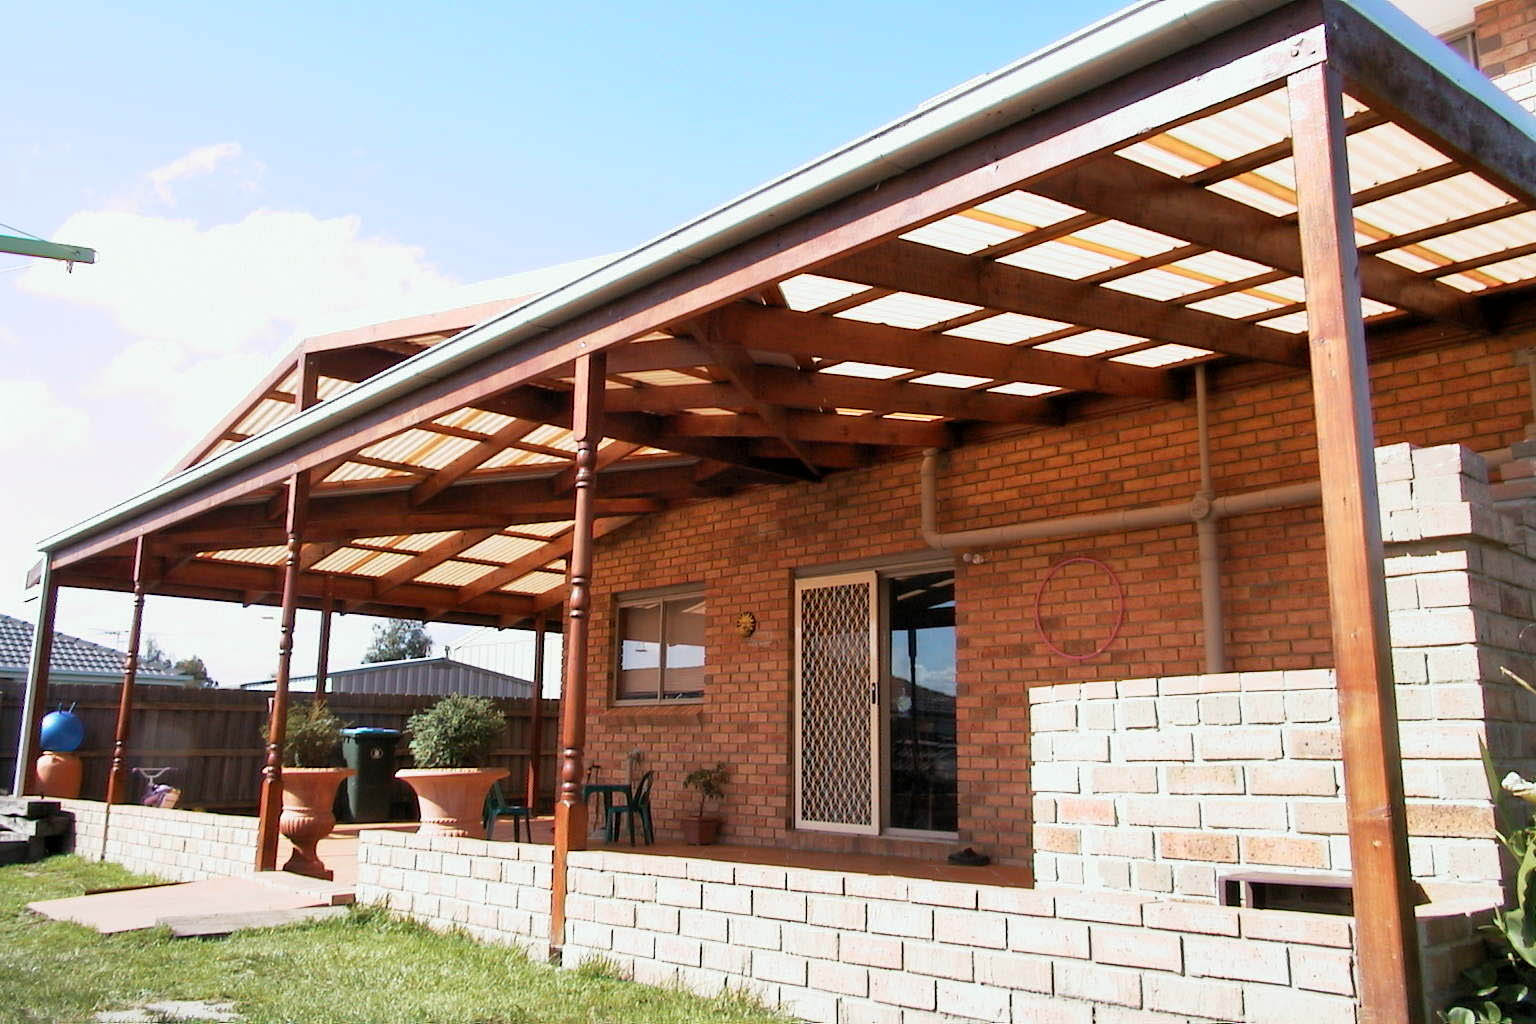 Outdoor patio on residential home using translucent roof sheeting